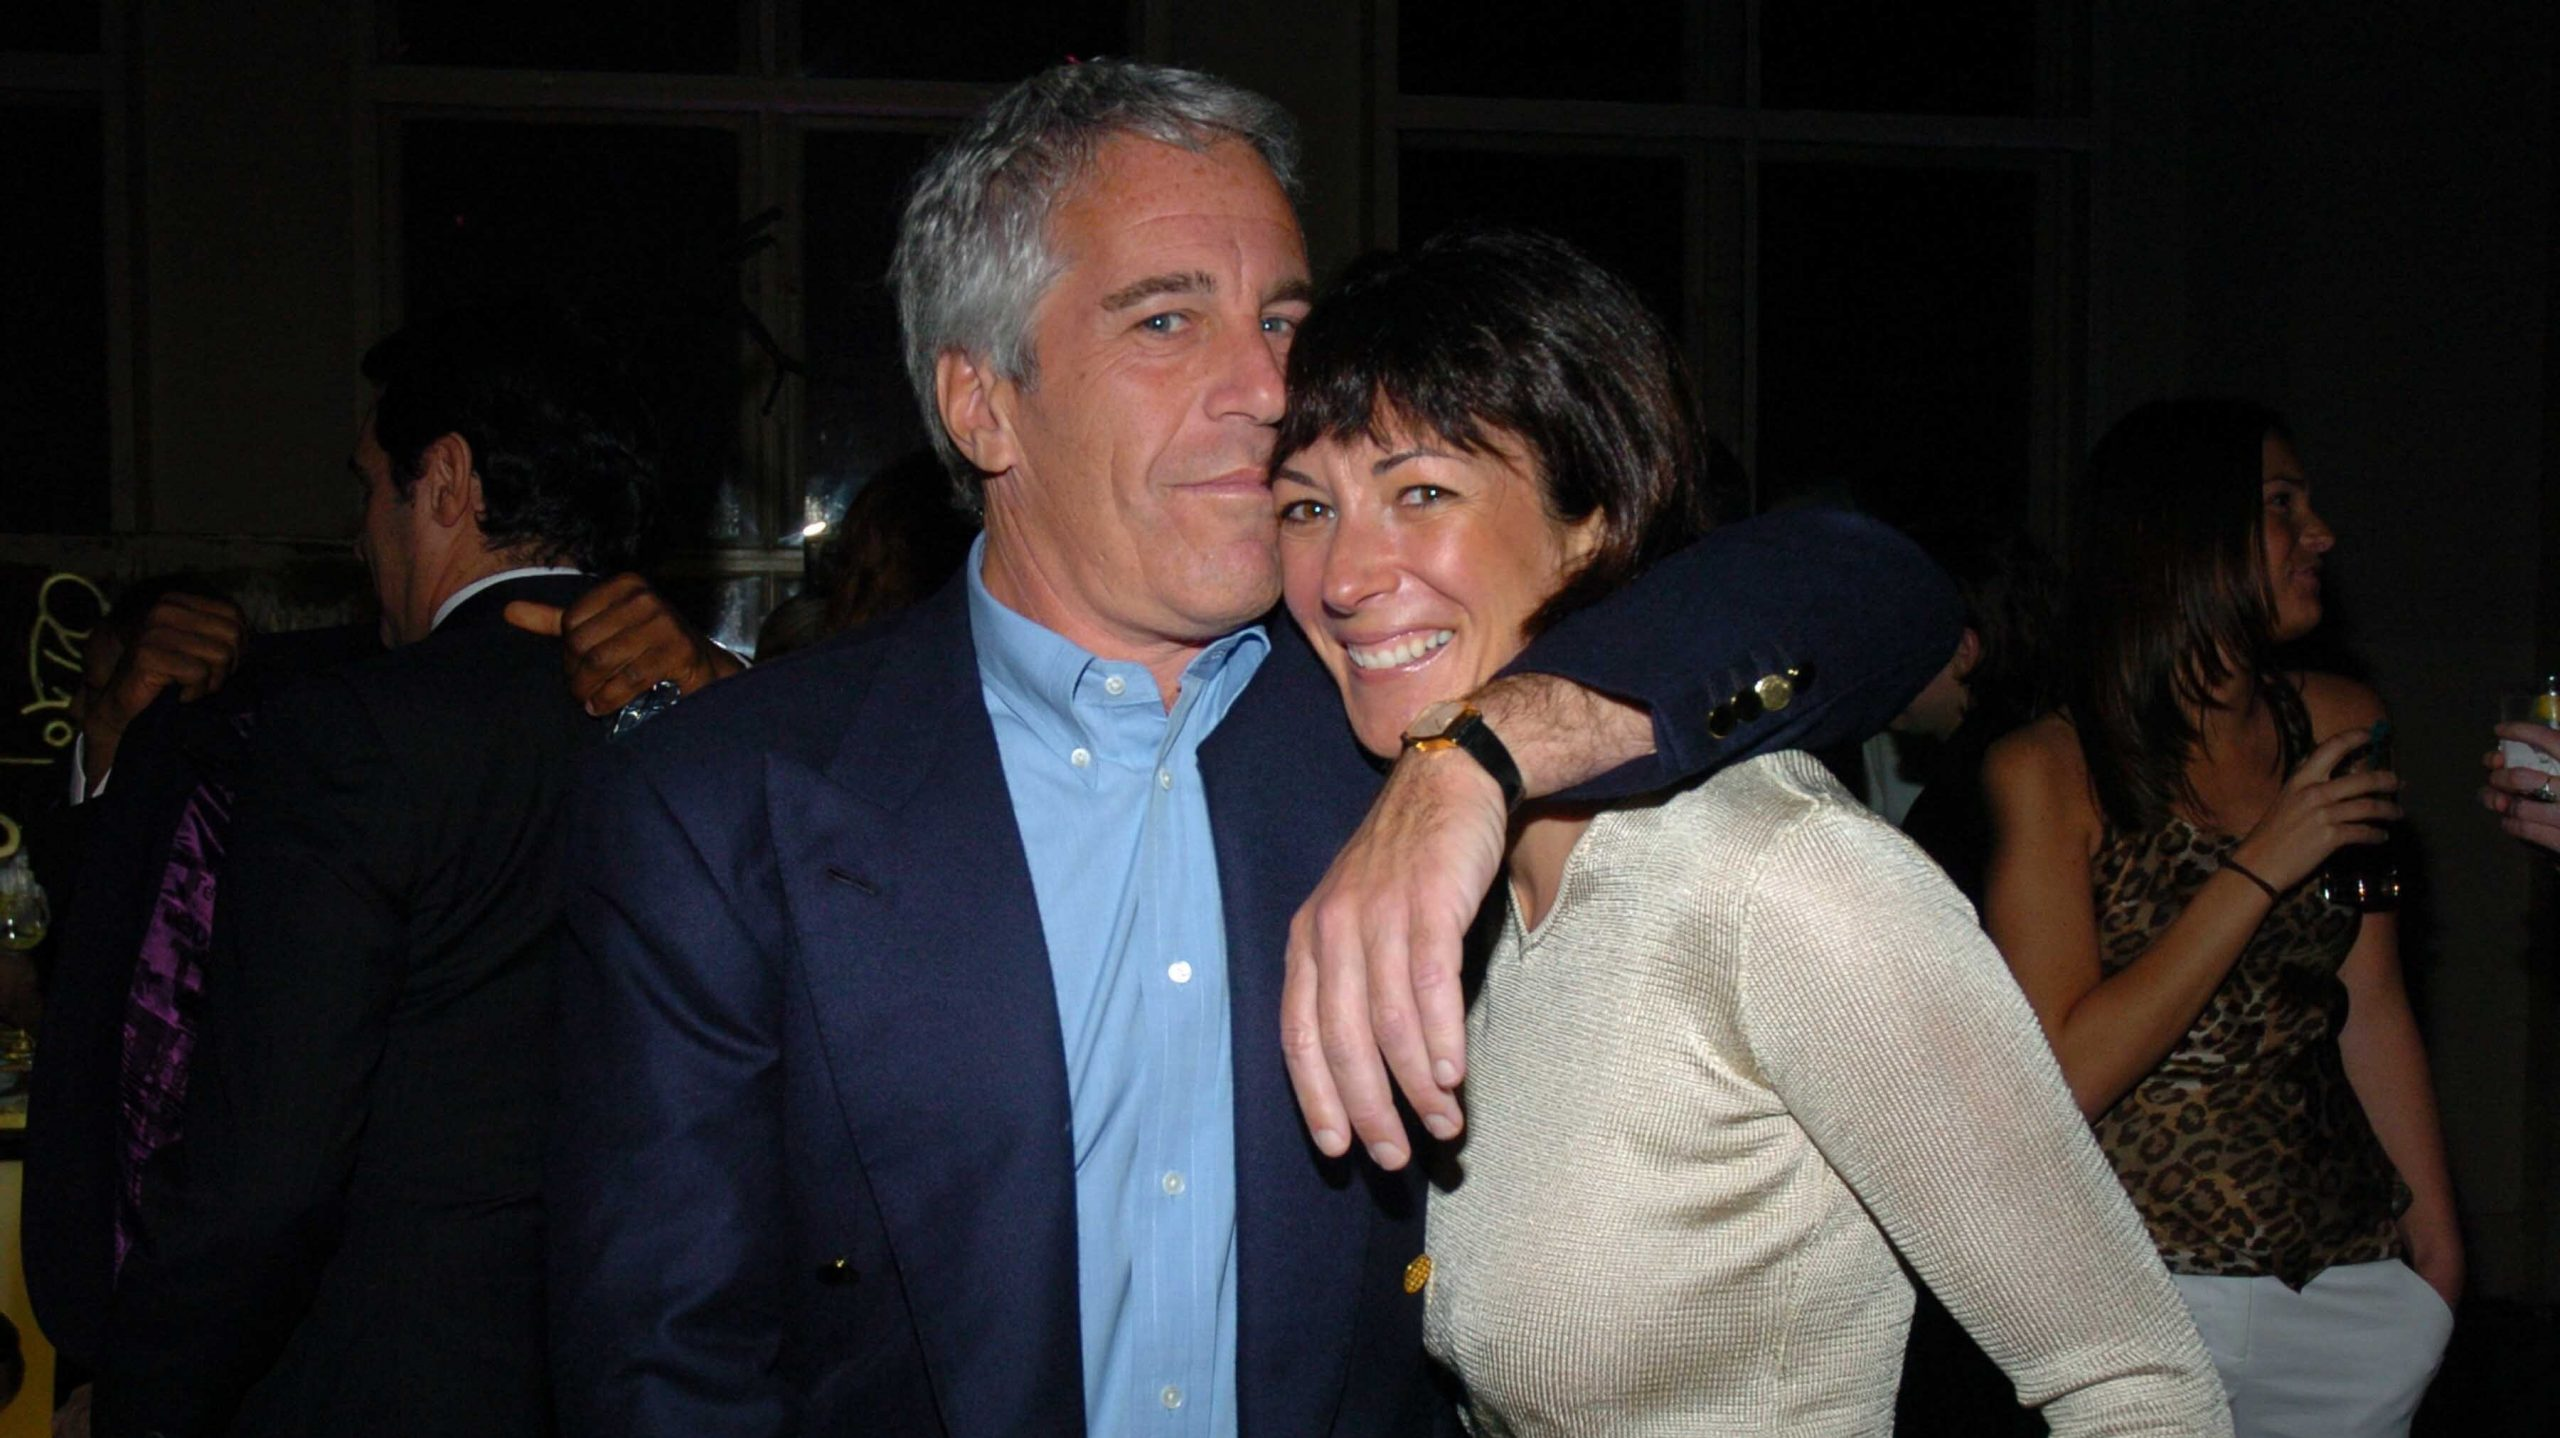 , Ghislaine Maxwell Groomed Girls for Epstein by Trying to 'Normalize Sexual Abuse', Prosecutors Say, Saubio Making Wealth